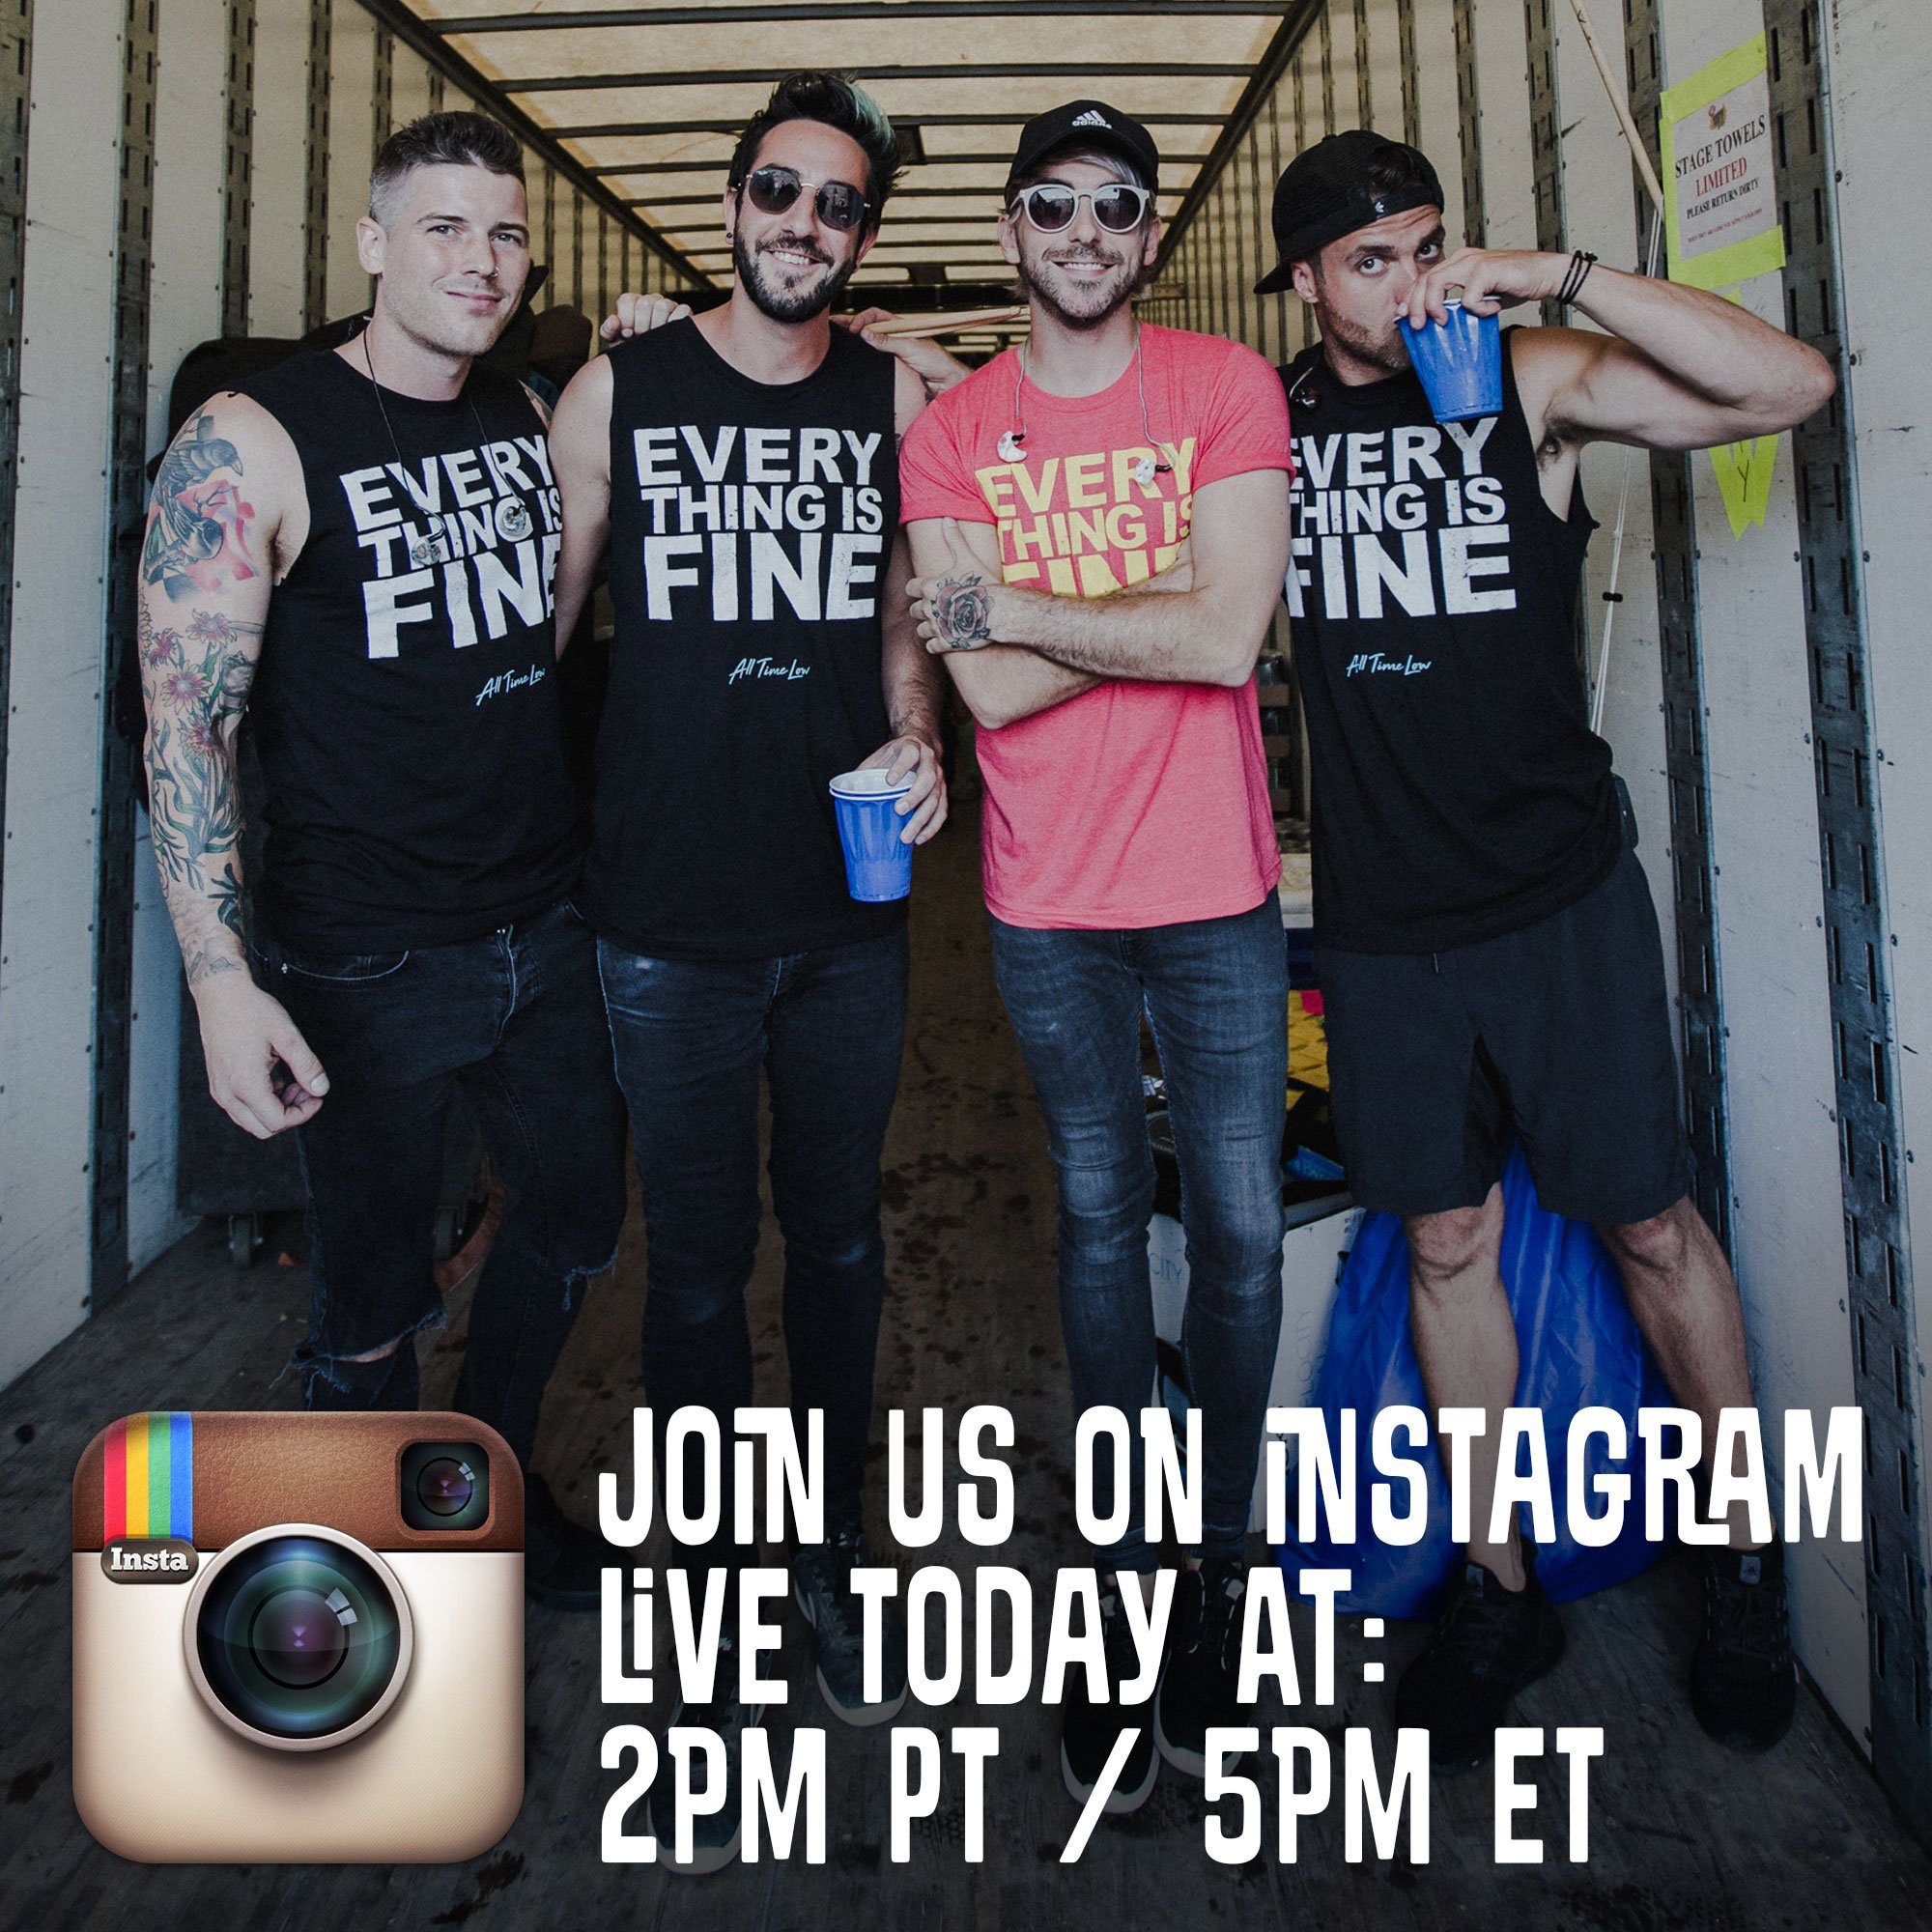 Tune in live on Instagram in 1 hour! https://t.co/0X7BfhLZH3 https://t.co/qsDmiimNlD